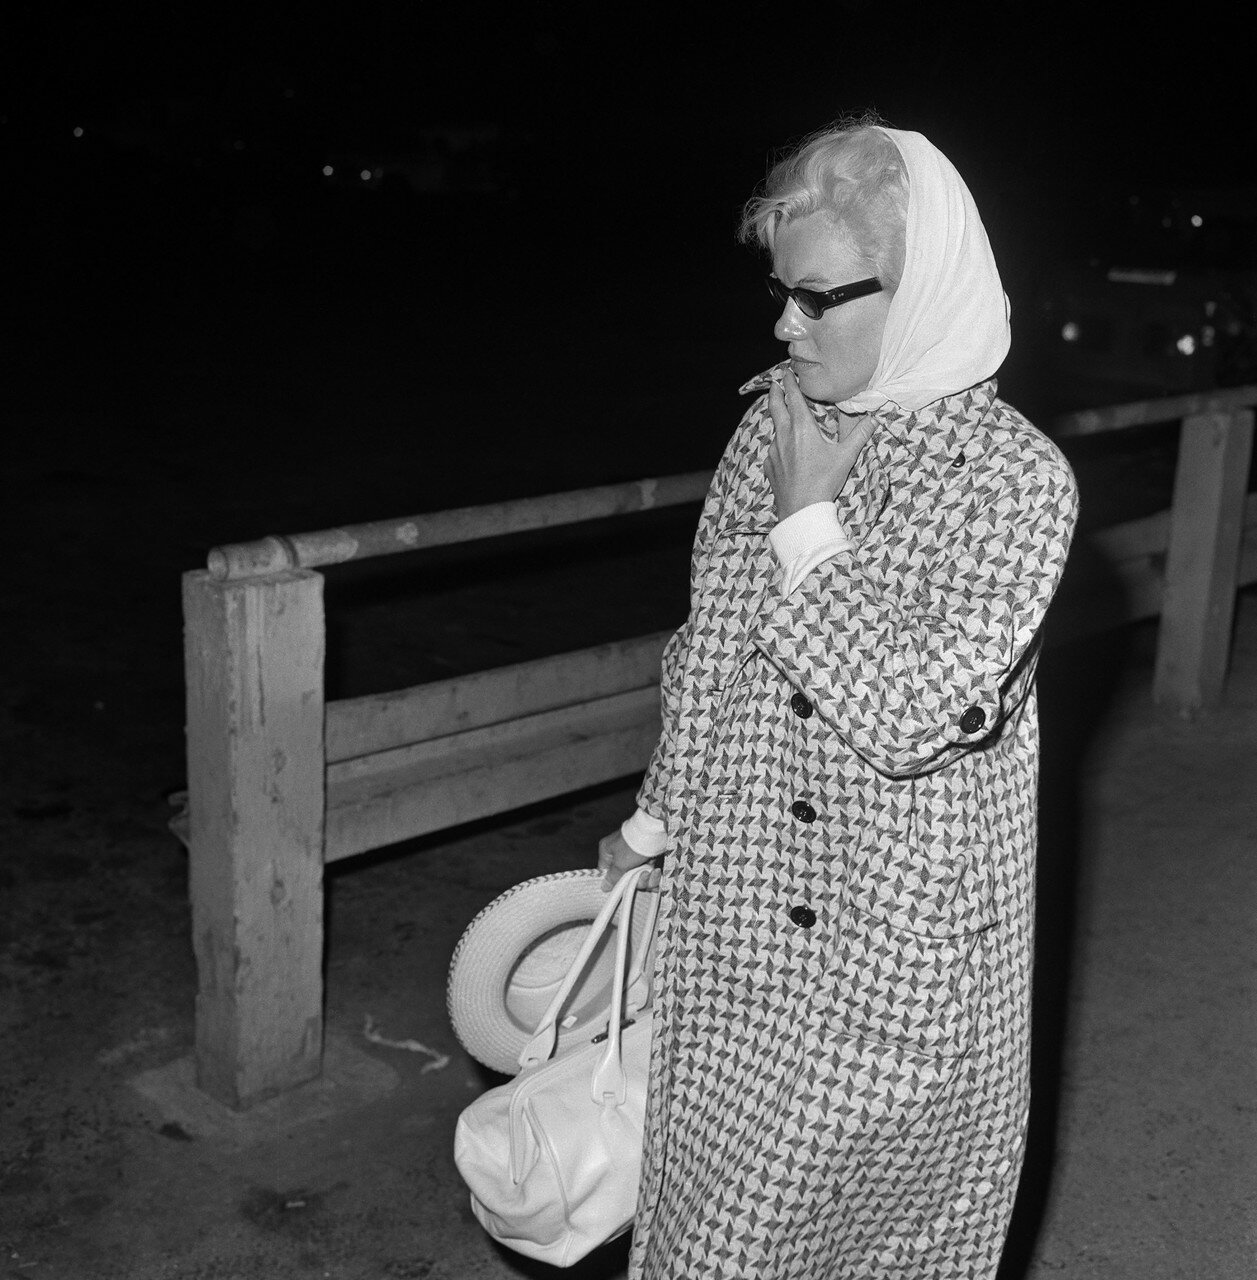 Marilyn Monroe Wearing Checkered Coat and Carrying Luggage